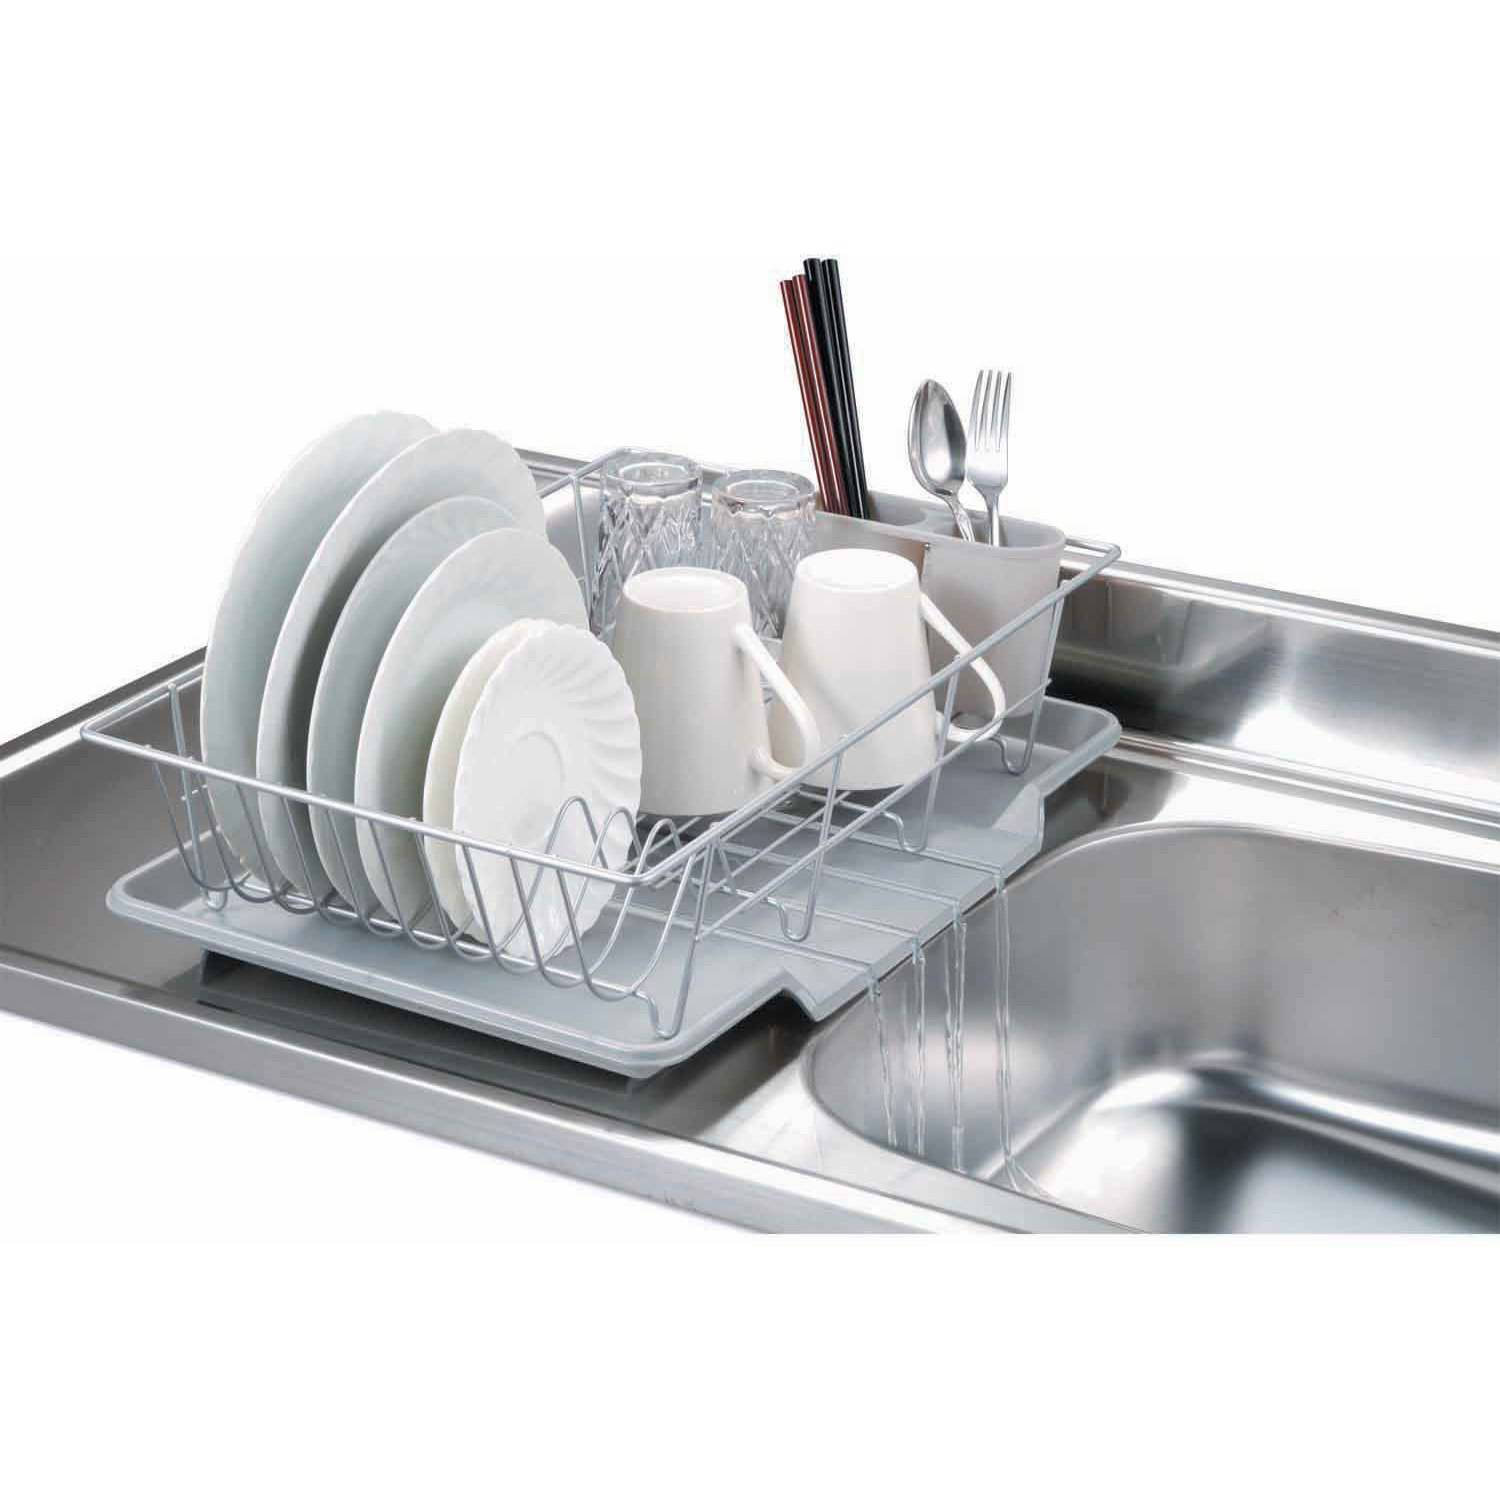 Home Basics 3-Piece Dish Drainer